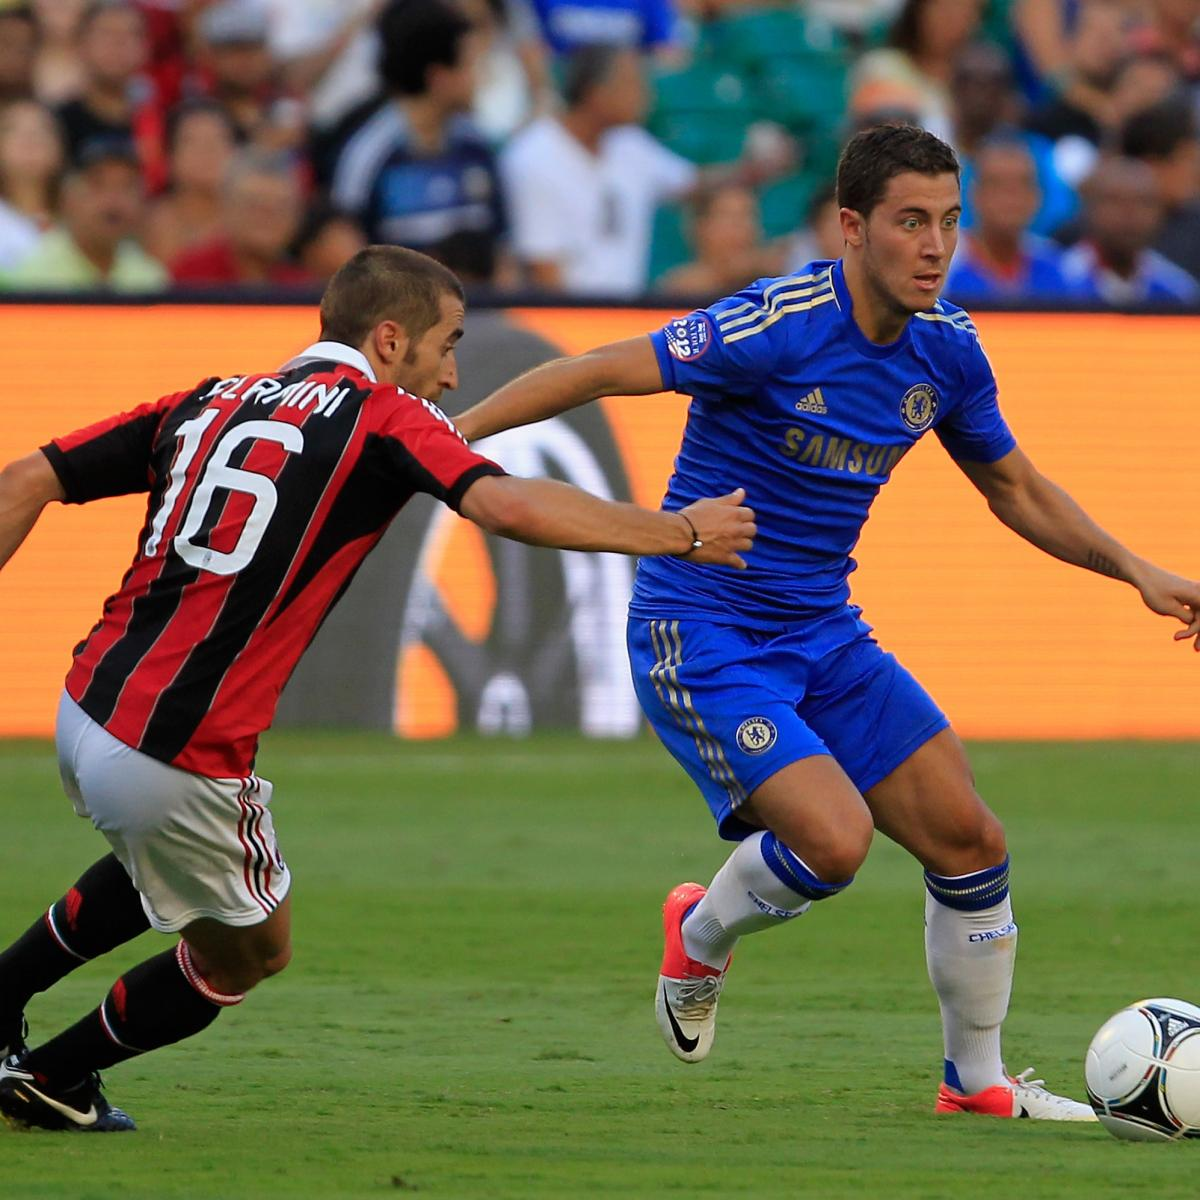 International Champions Cup Milan Vs Barcelona: AC Milan Vs. Chelsea: 6 Things We Learned From